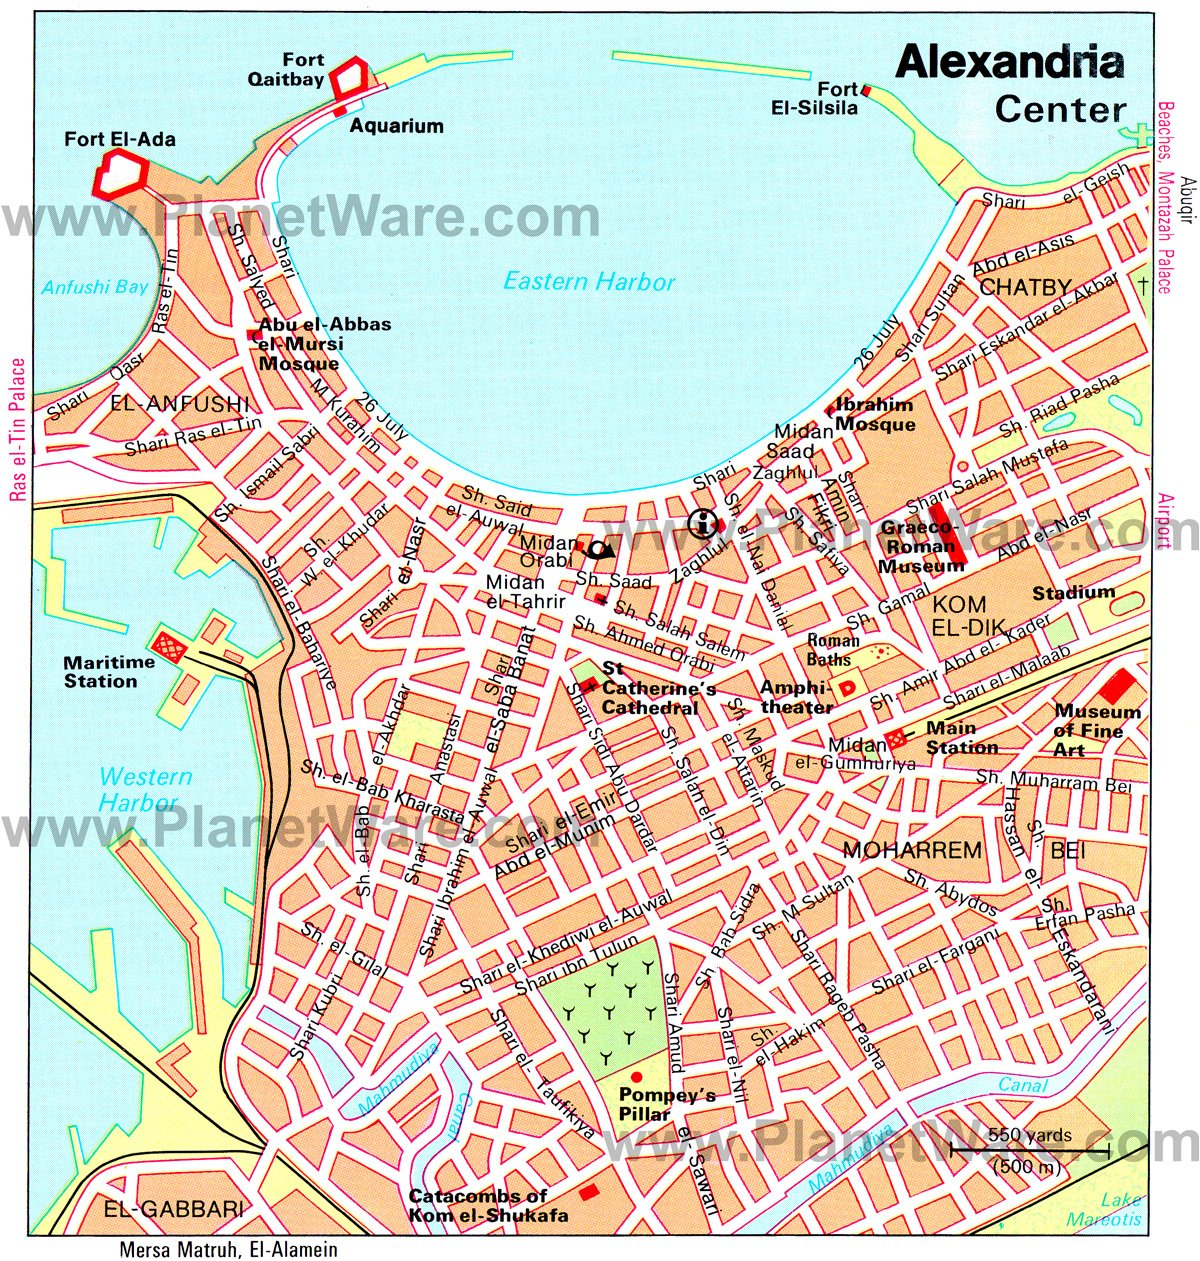 14 Top Tourist Attractions in Alexandria & Easy Day Trips | PlanetWare